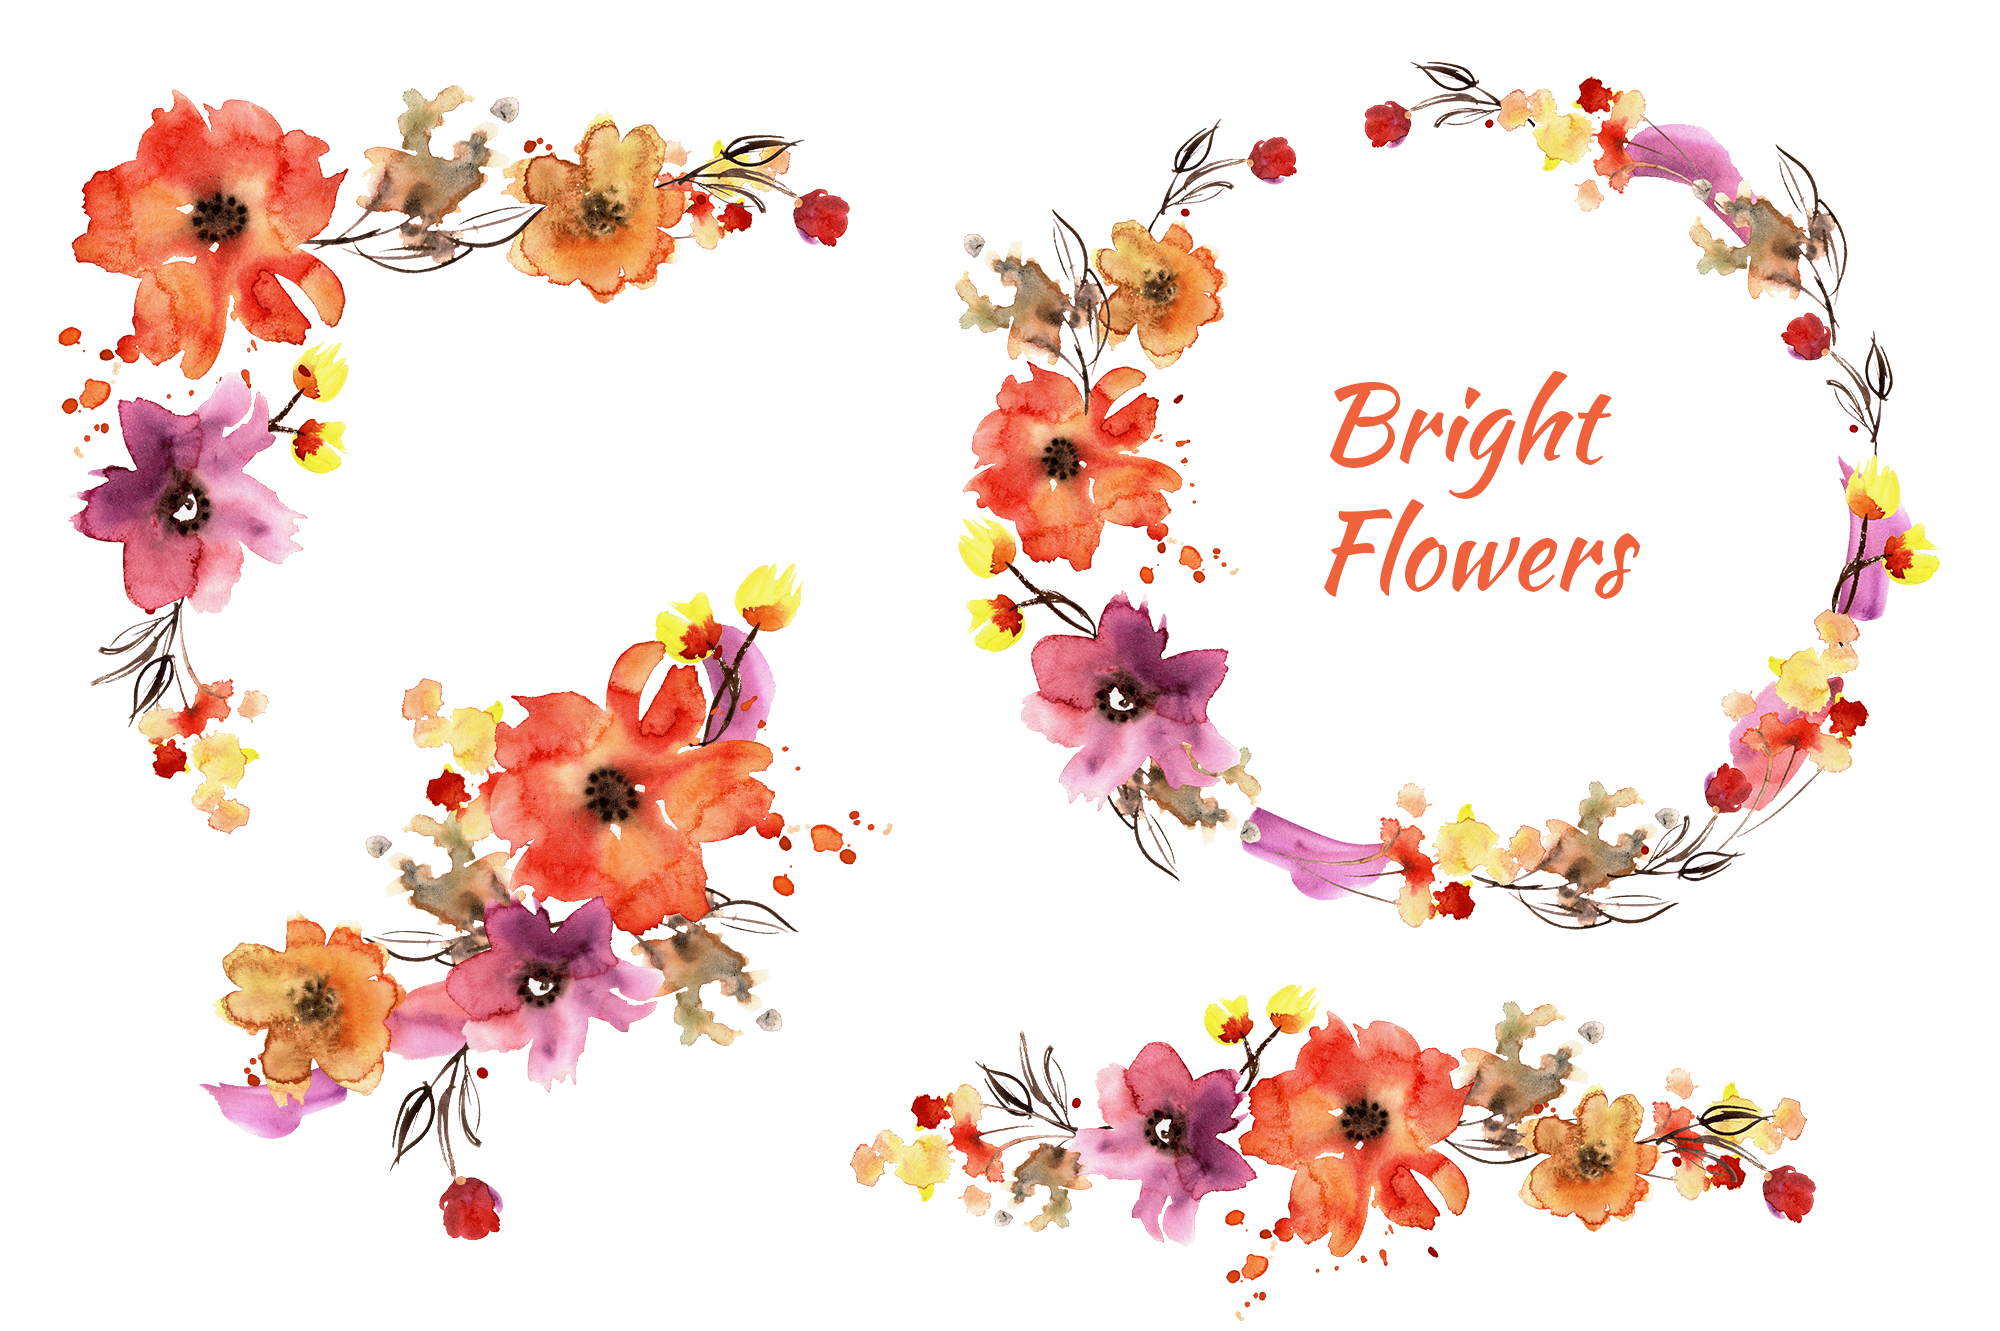 Bright flowers example image 3